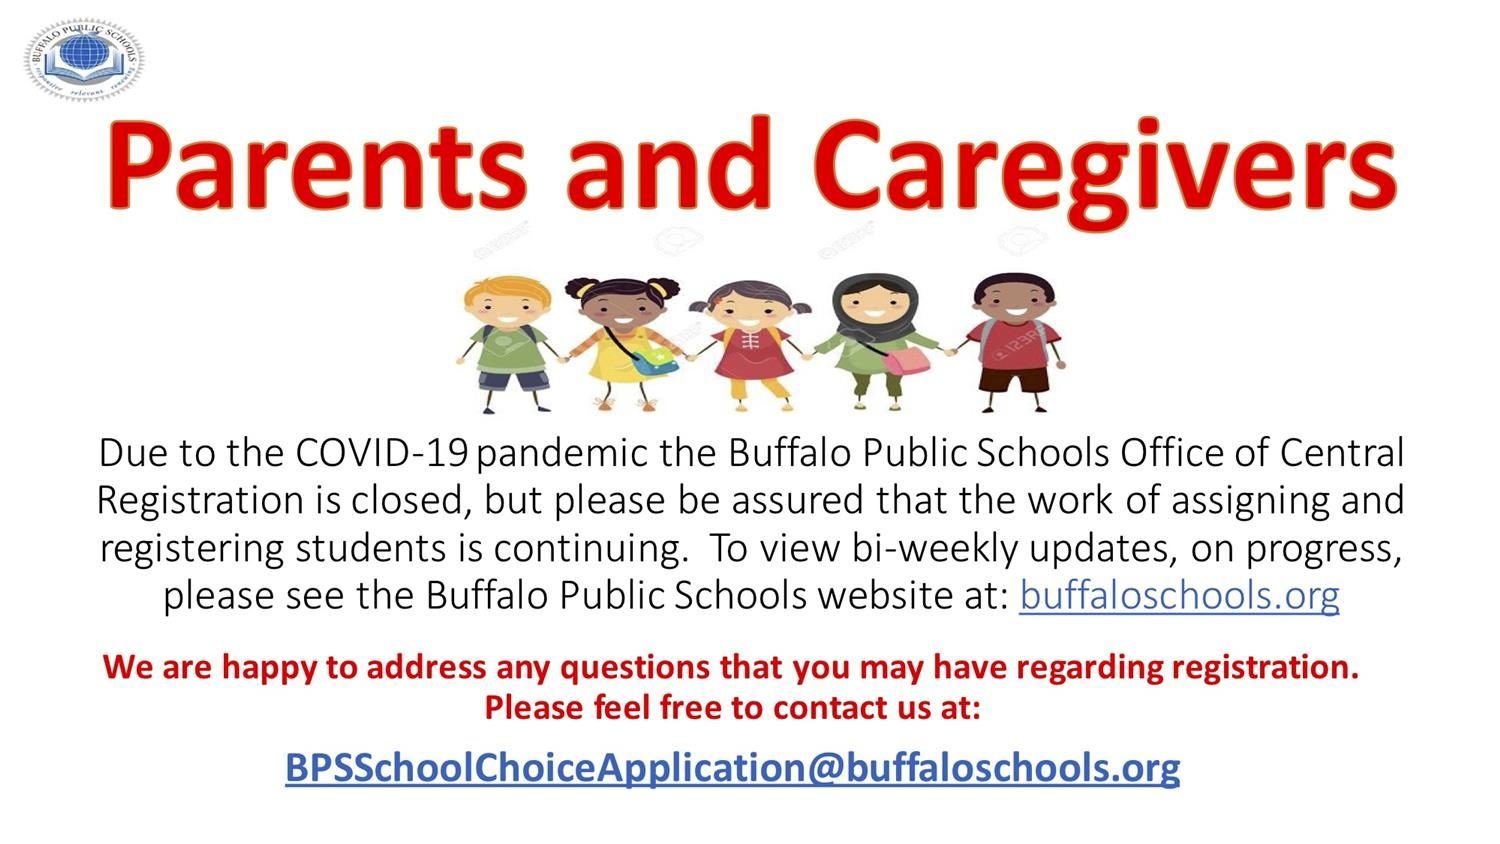 email bpsschoolchoiceapplication@buffaloschools.org with questions